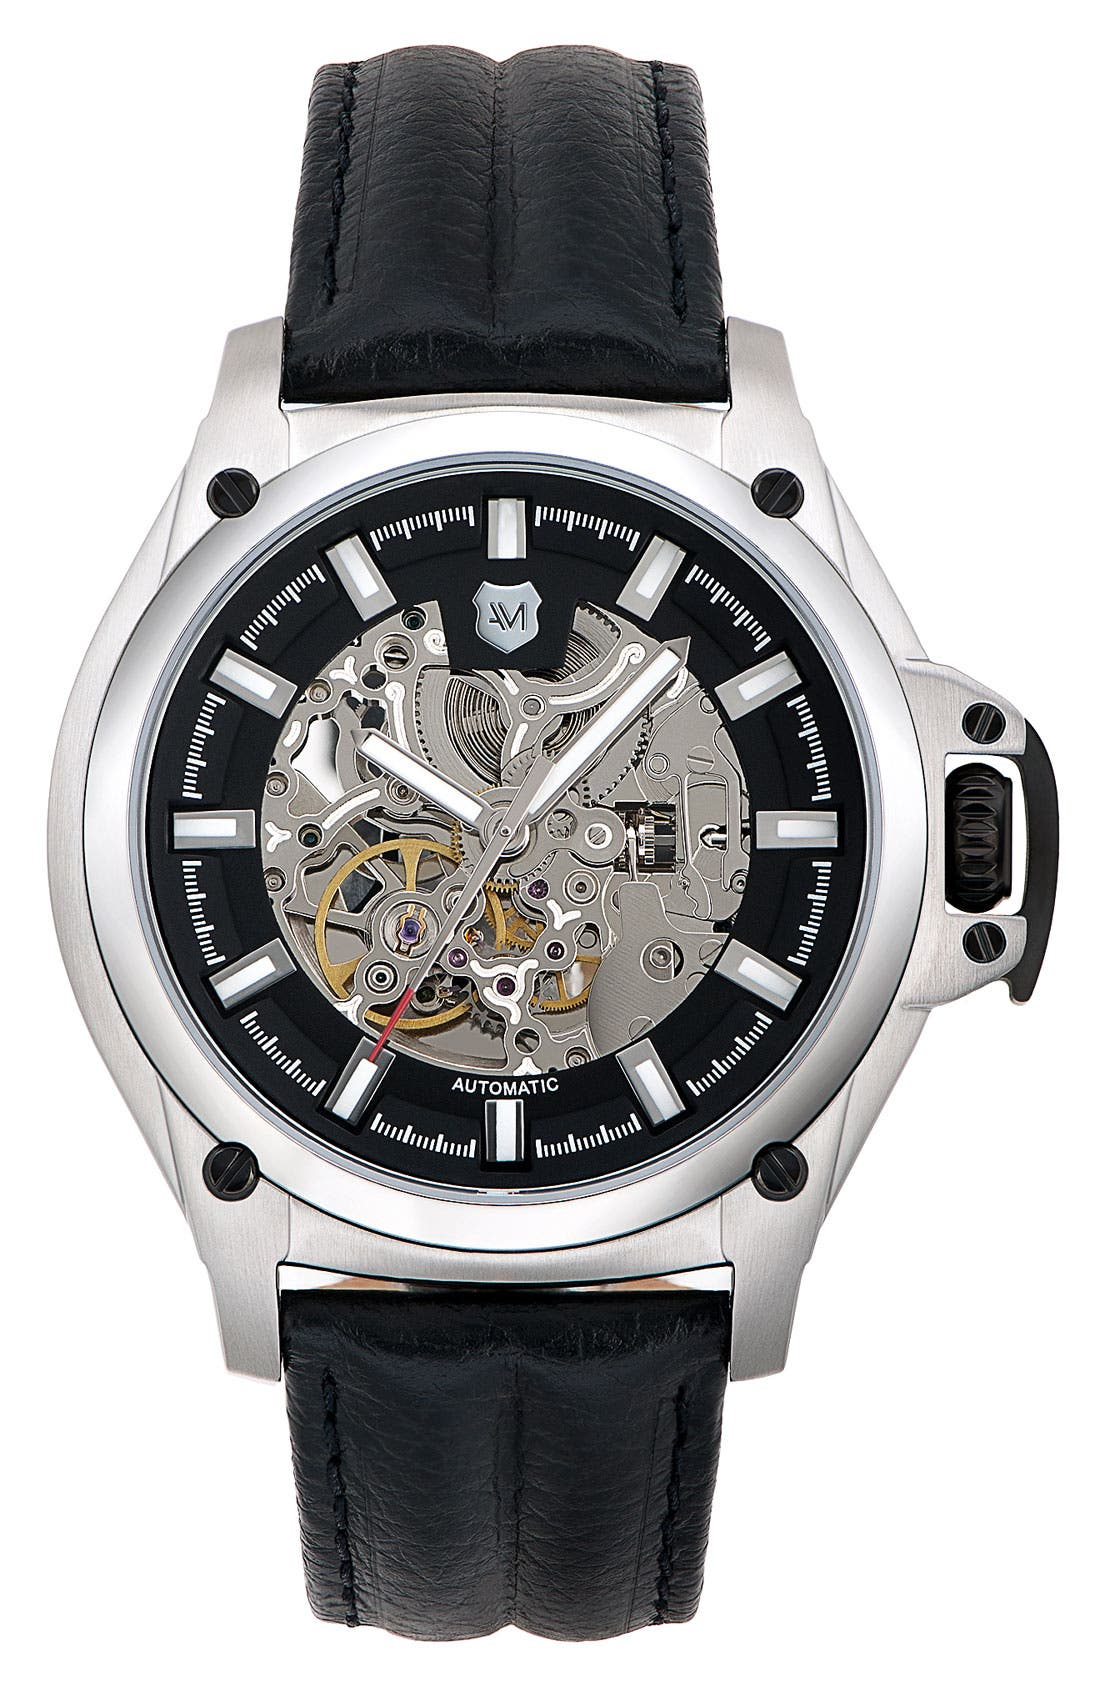 ANDREW MARC, Watches 'G-III Pro' Automatic Leather Strap Watch, Main thumbnail 1, color, 001